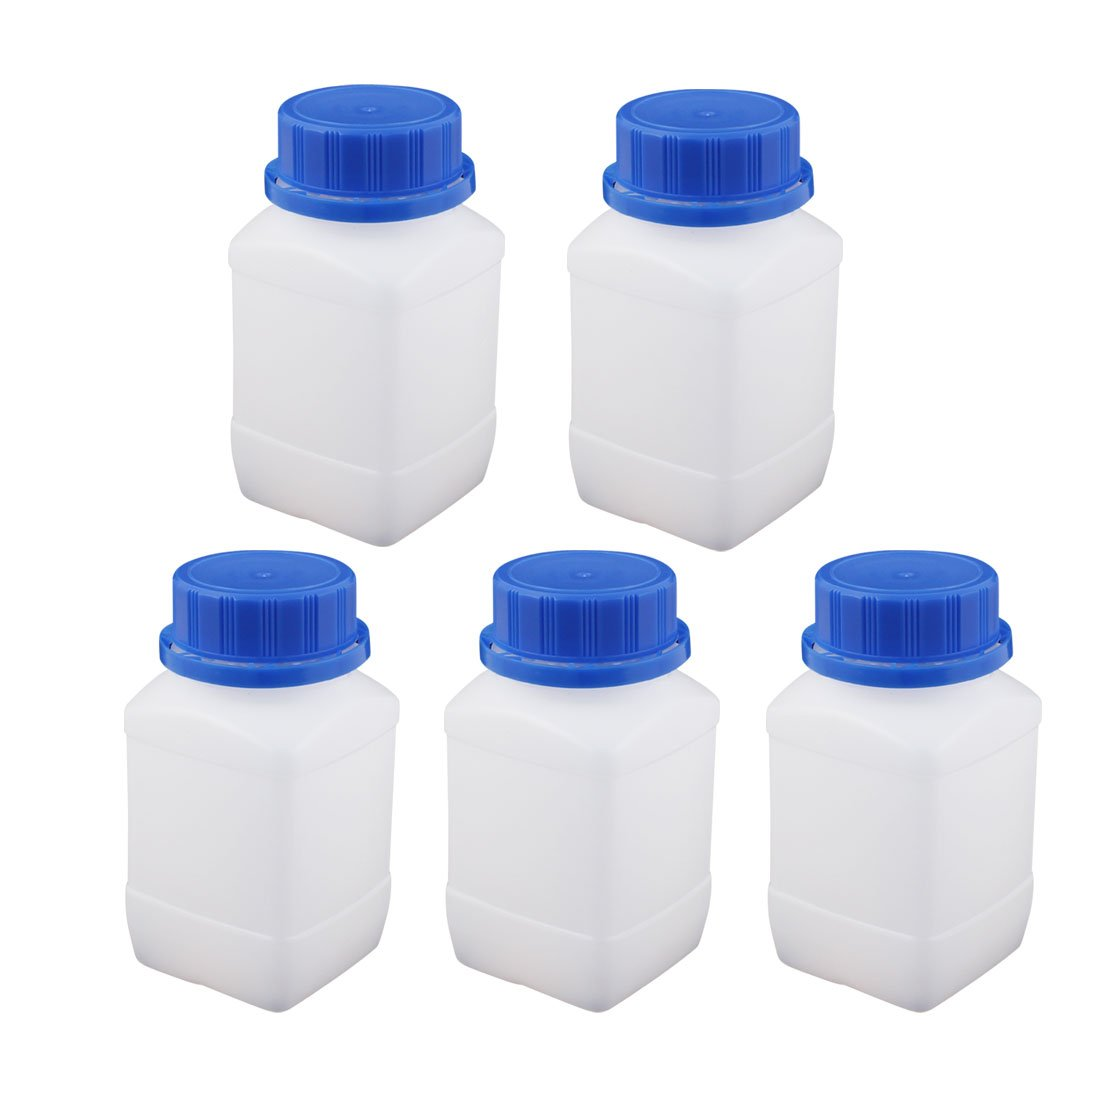 uxcell 5Pcs 250ml Plastic Square Wide Mouth Chemical Sample Reagent Bottle Thickening